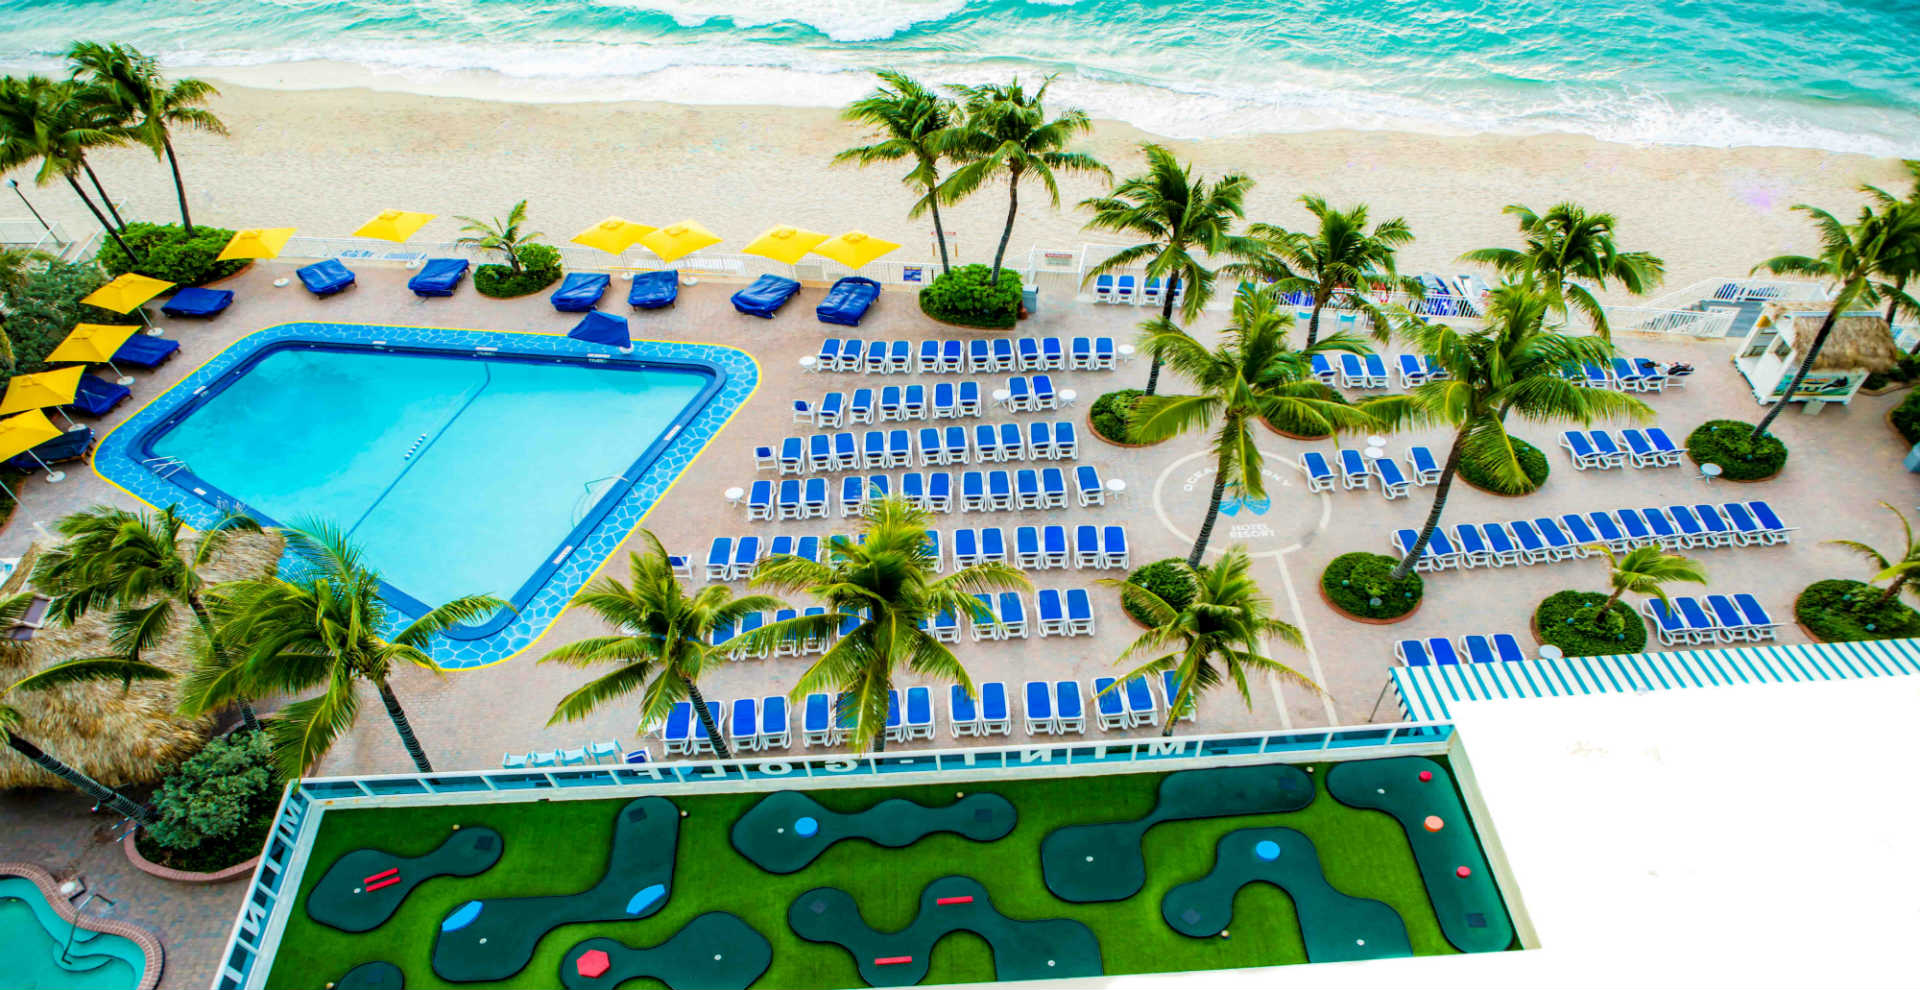 resort amenities in ft. lauderdale - florida gulf coast resorts